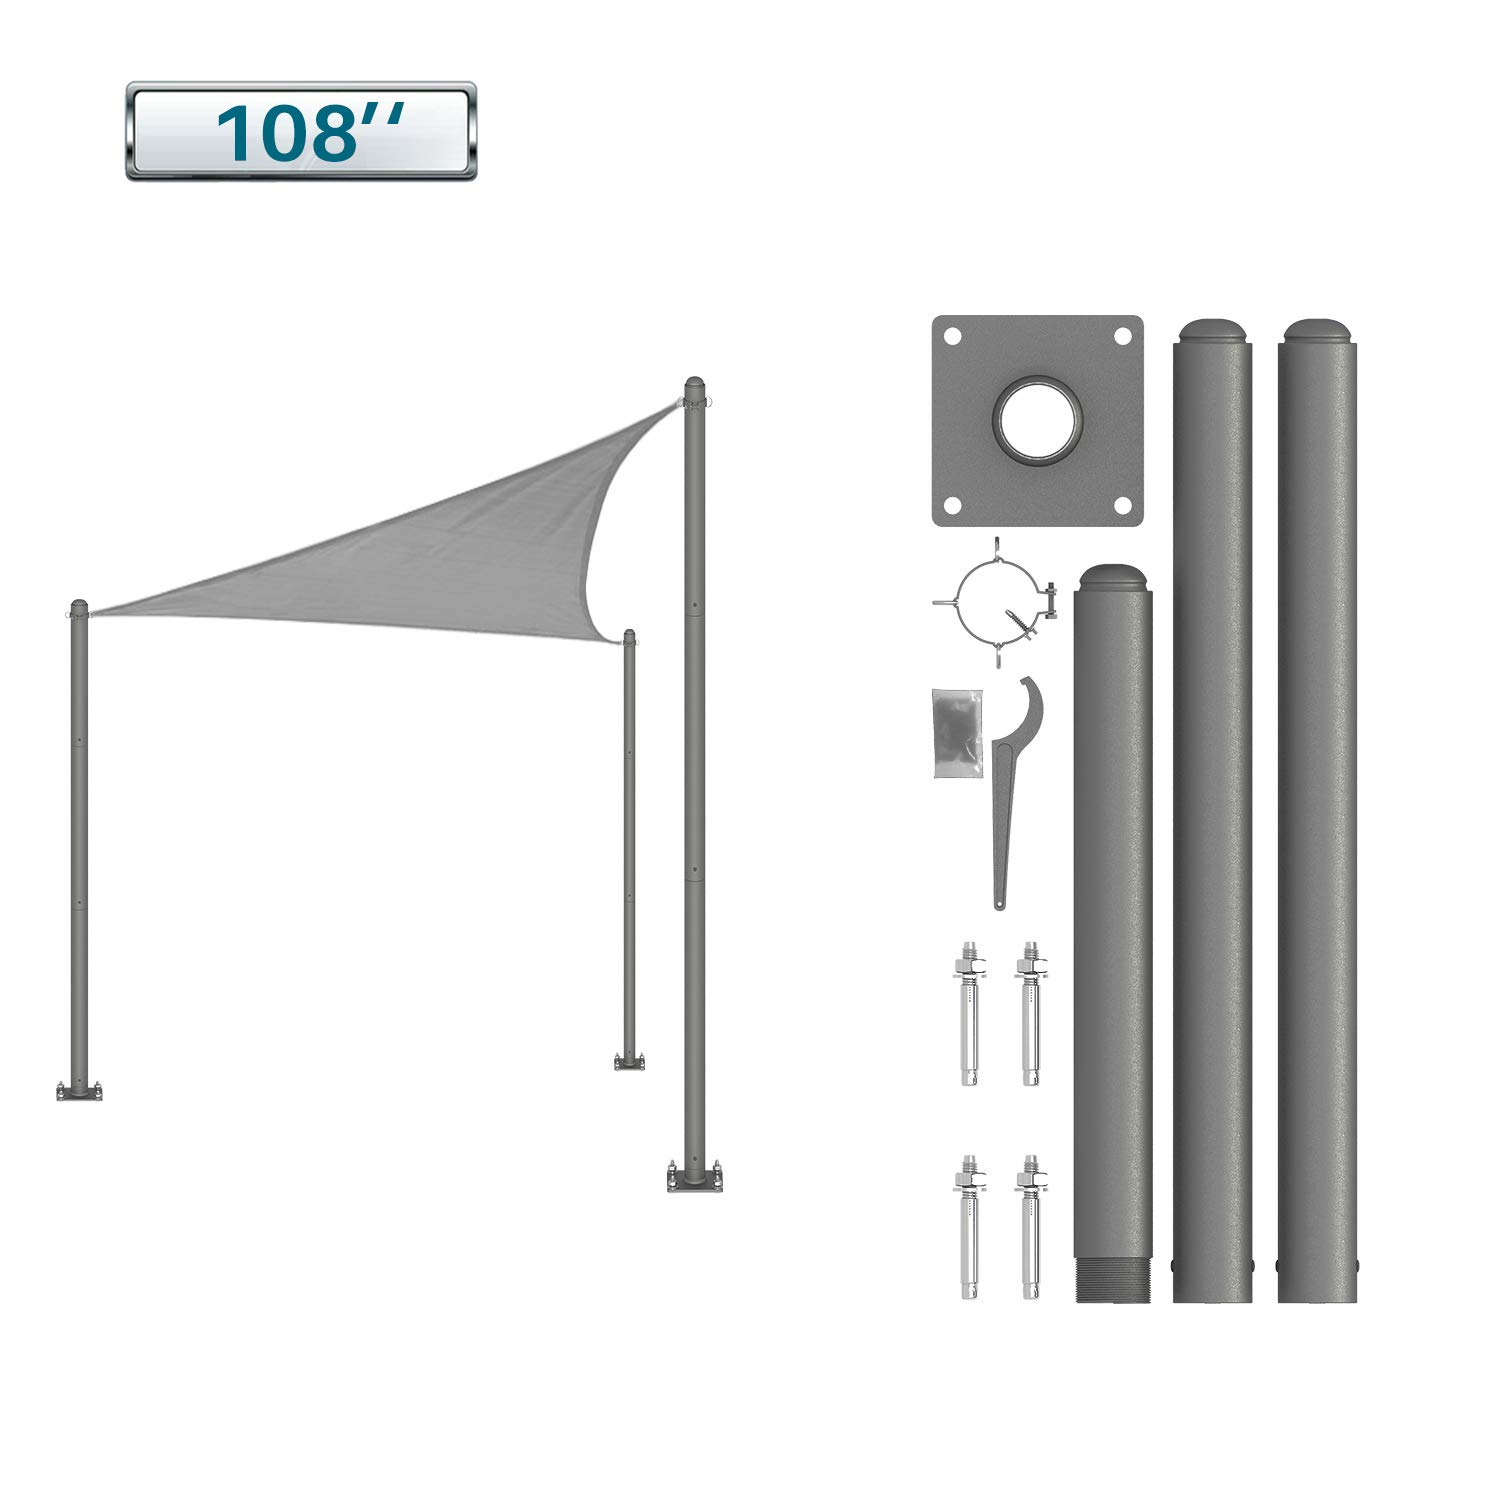 Coarbor Pole Kit for Sun Shade Sail Canopy Installation Sturdy and Strong Free Standing Post for Outdoor Deck Patio Yard